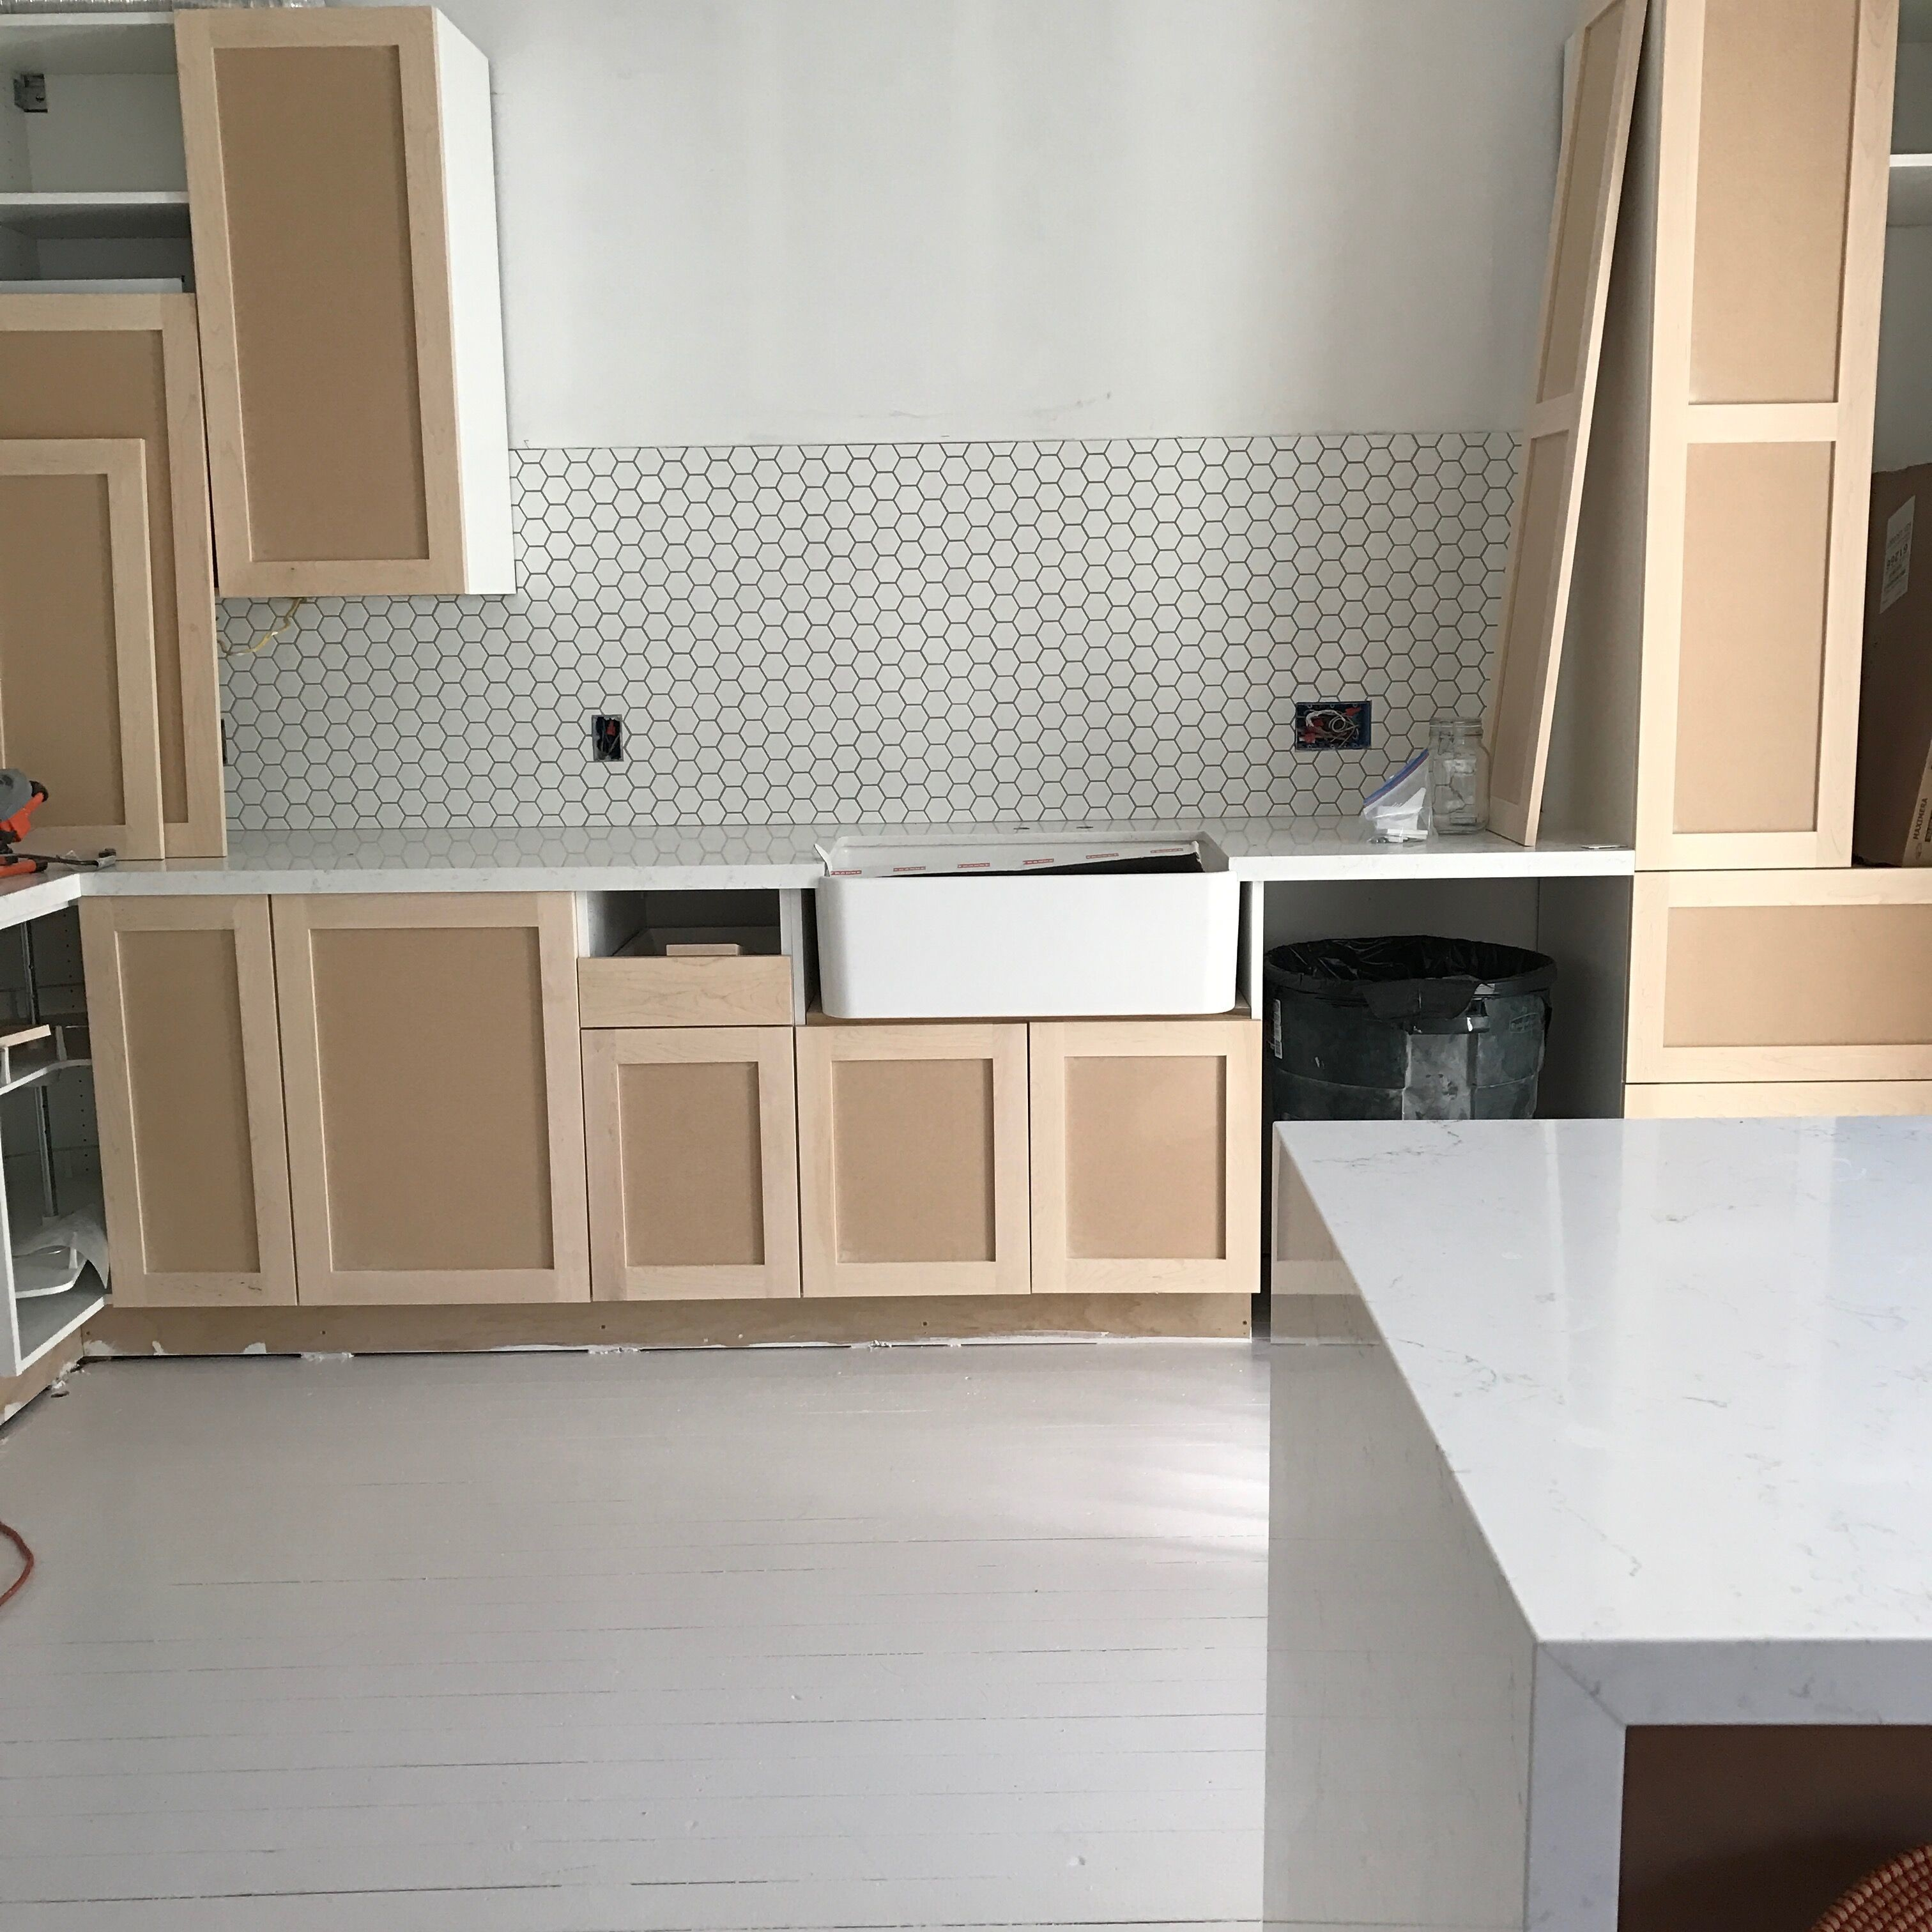 We placed the blank cabinets on to get a sense of the space. We couldn't help it — we were too excited. We soon after removed and painted a minty green.